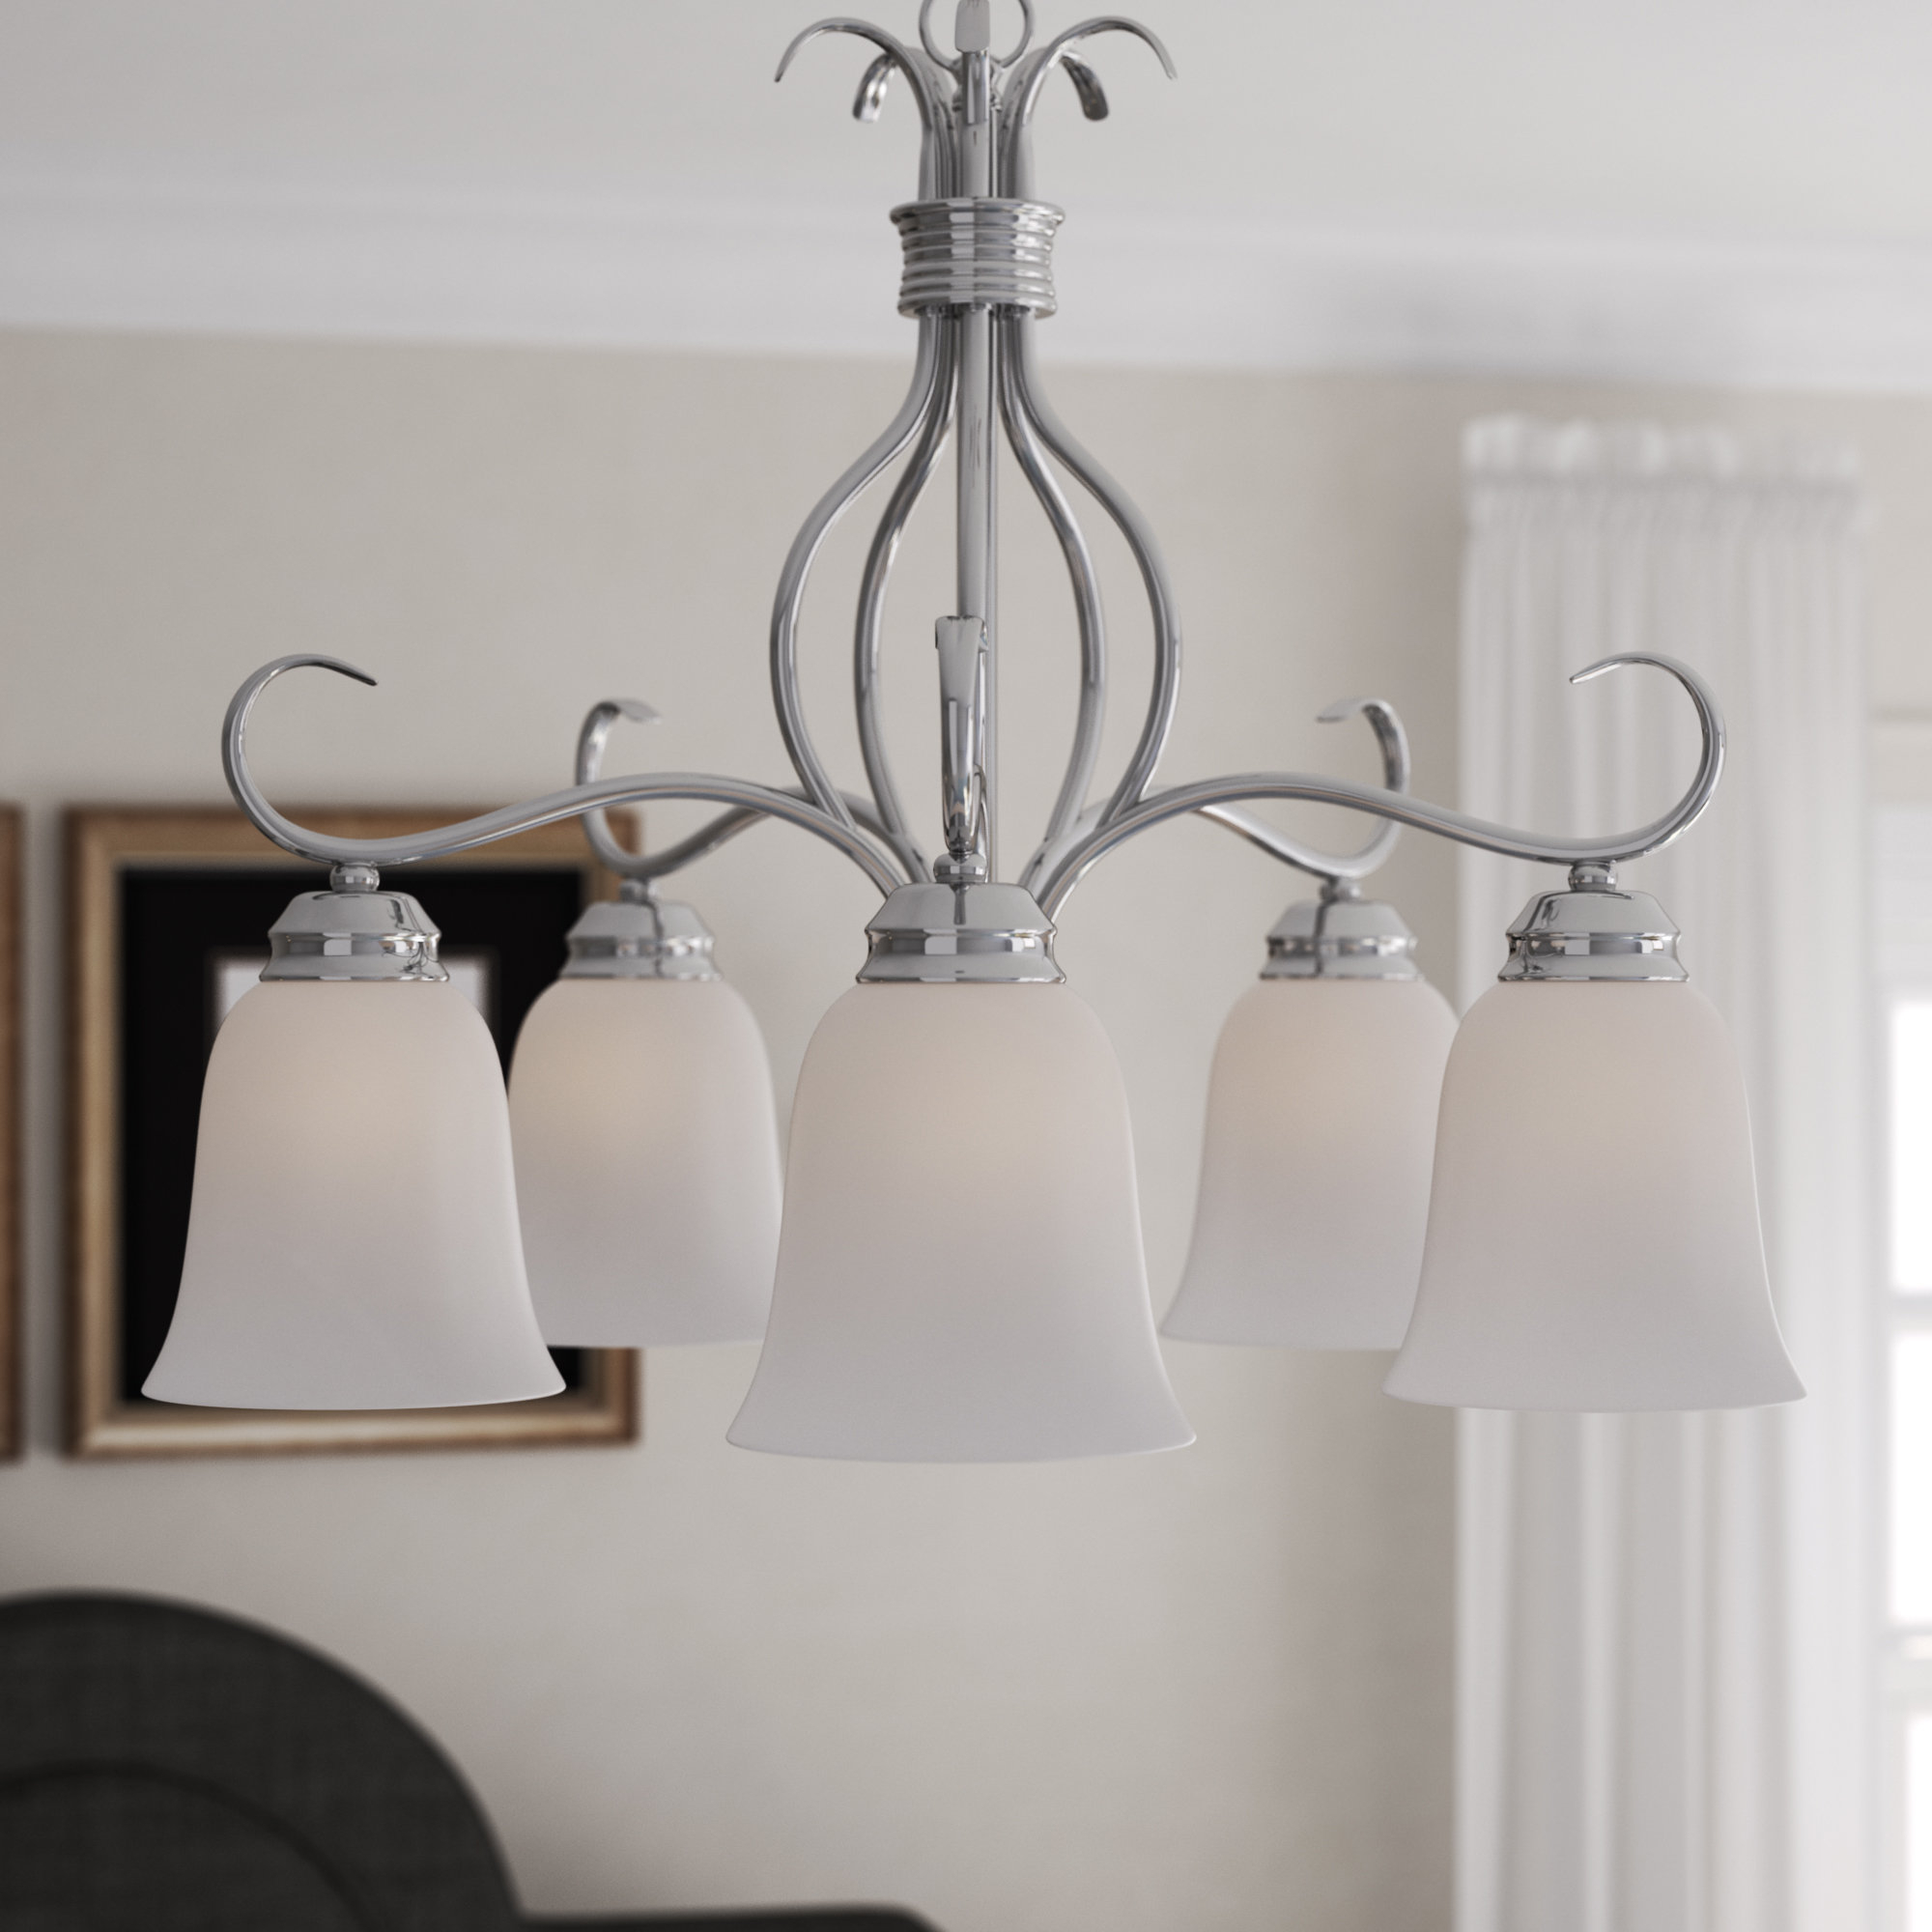 Most Recent Crofoot 5 Light Shaded Chandeliers With Regard To Wehr 5 Light Shaded Chandelier (View 12 of 20)